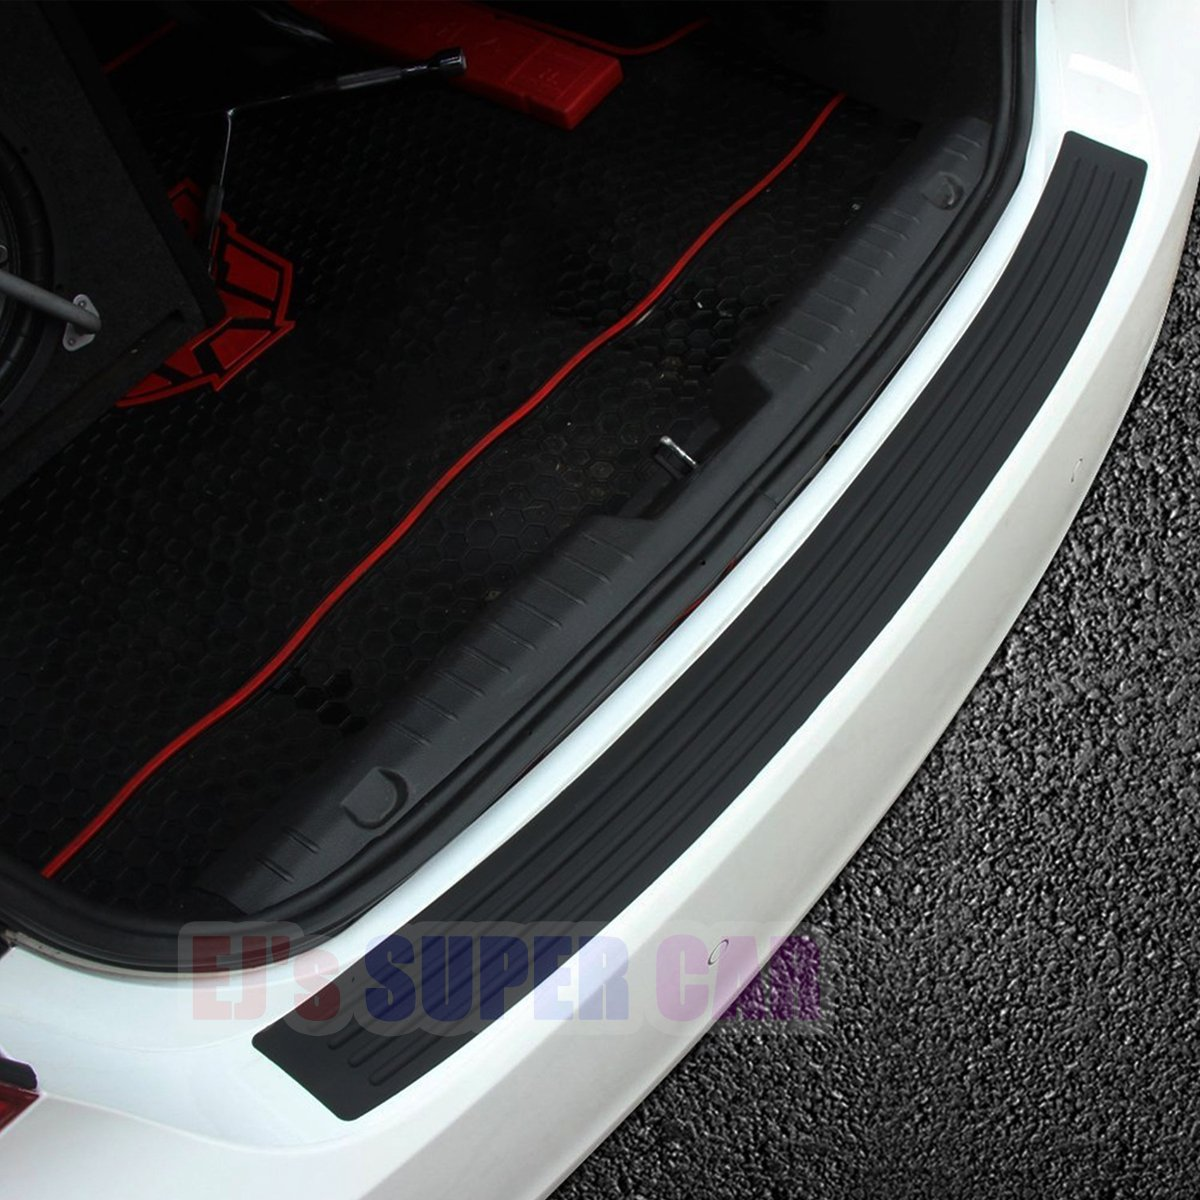 Ej super car rear bumper protector guard universal black rubber scratchresistant trunk door entry guards accessory trim cover for suv carseasy d i y